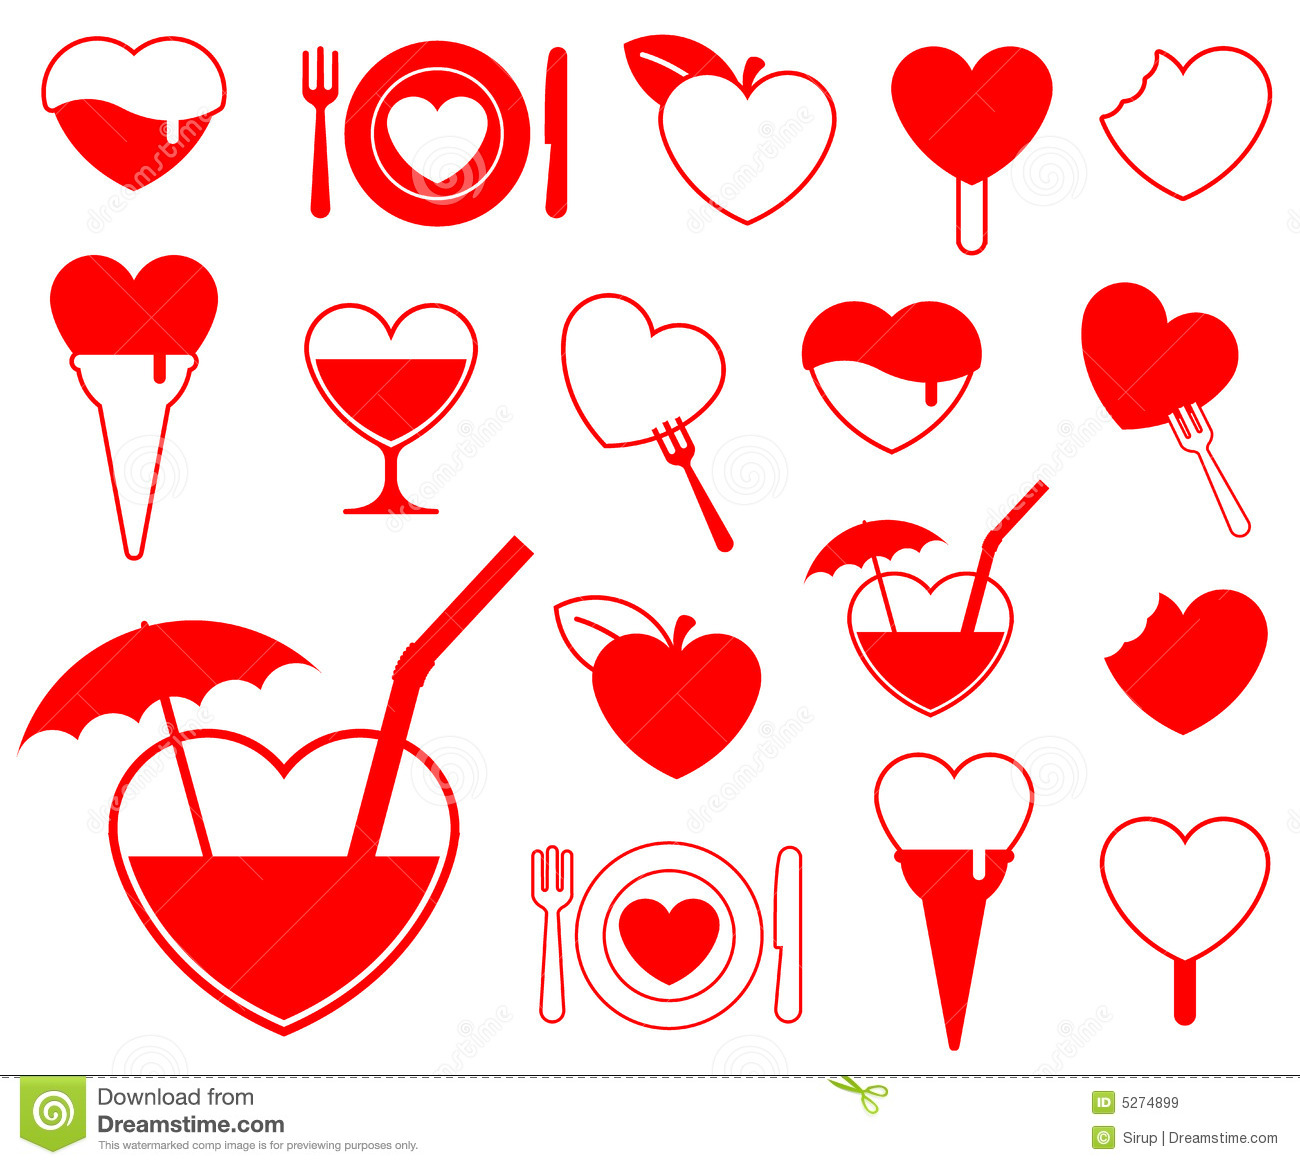 clipart icon collection - photo #49